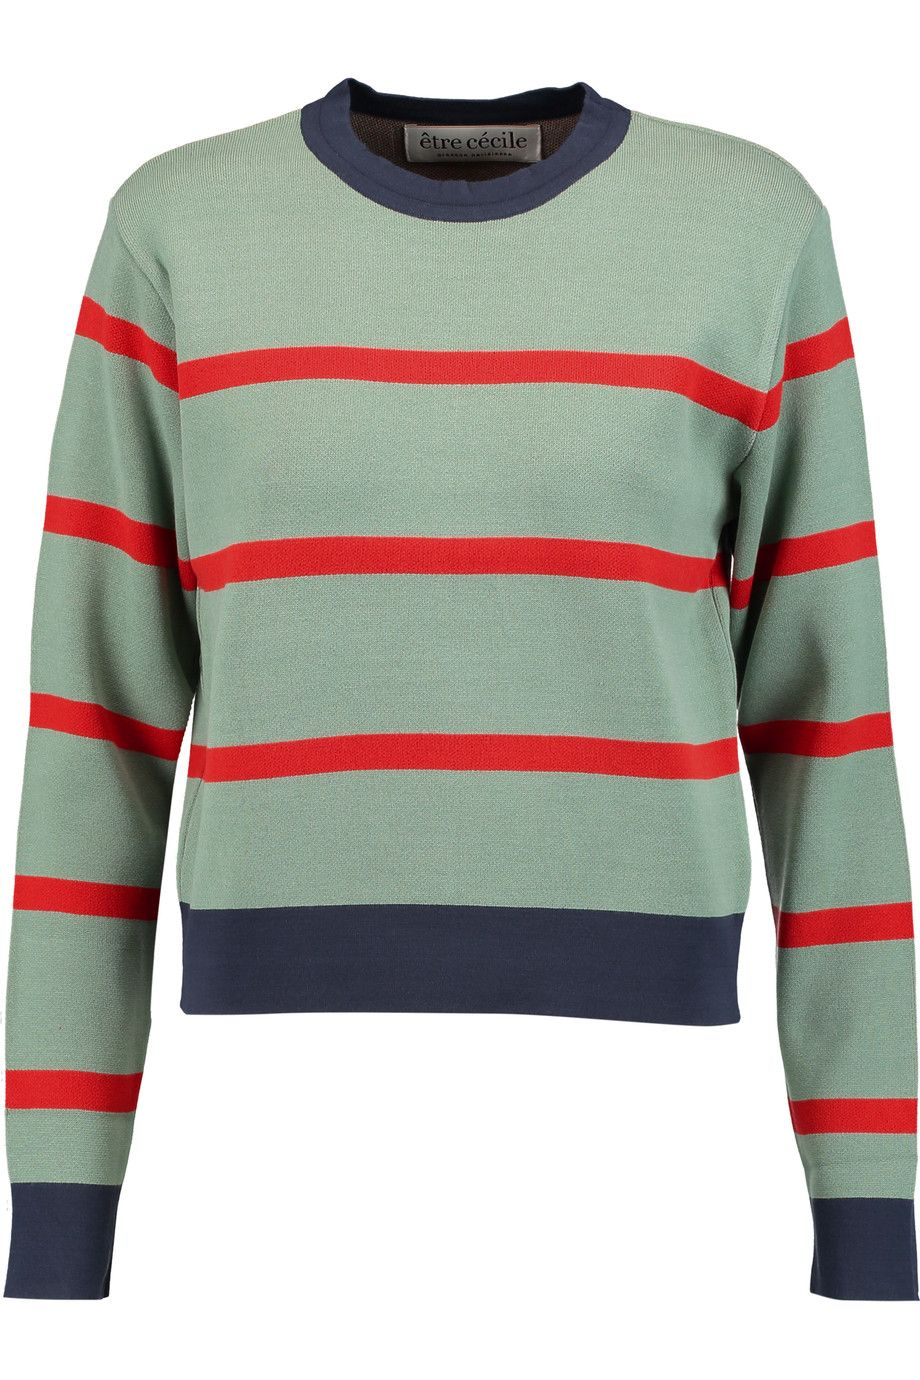 ETRE CECILE Striped stretch-knit sweater. #etrececile #cloth ...